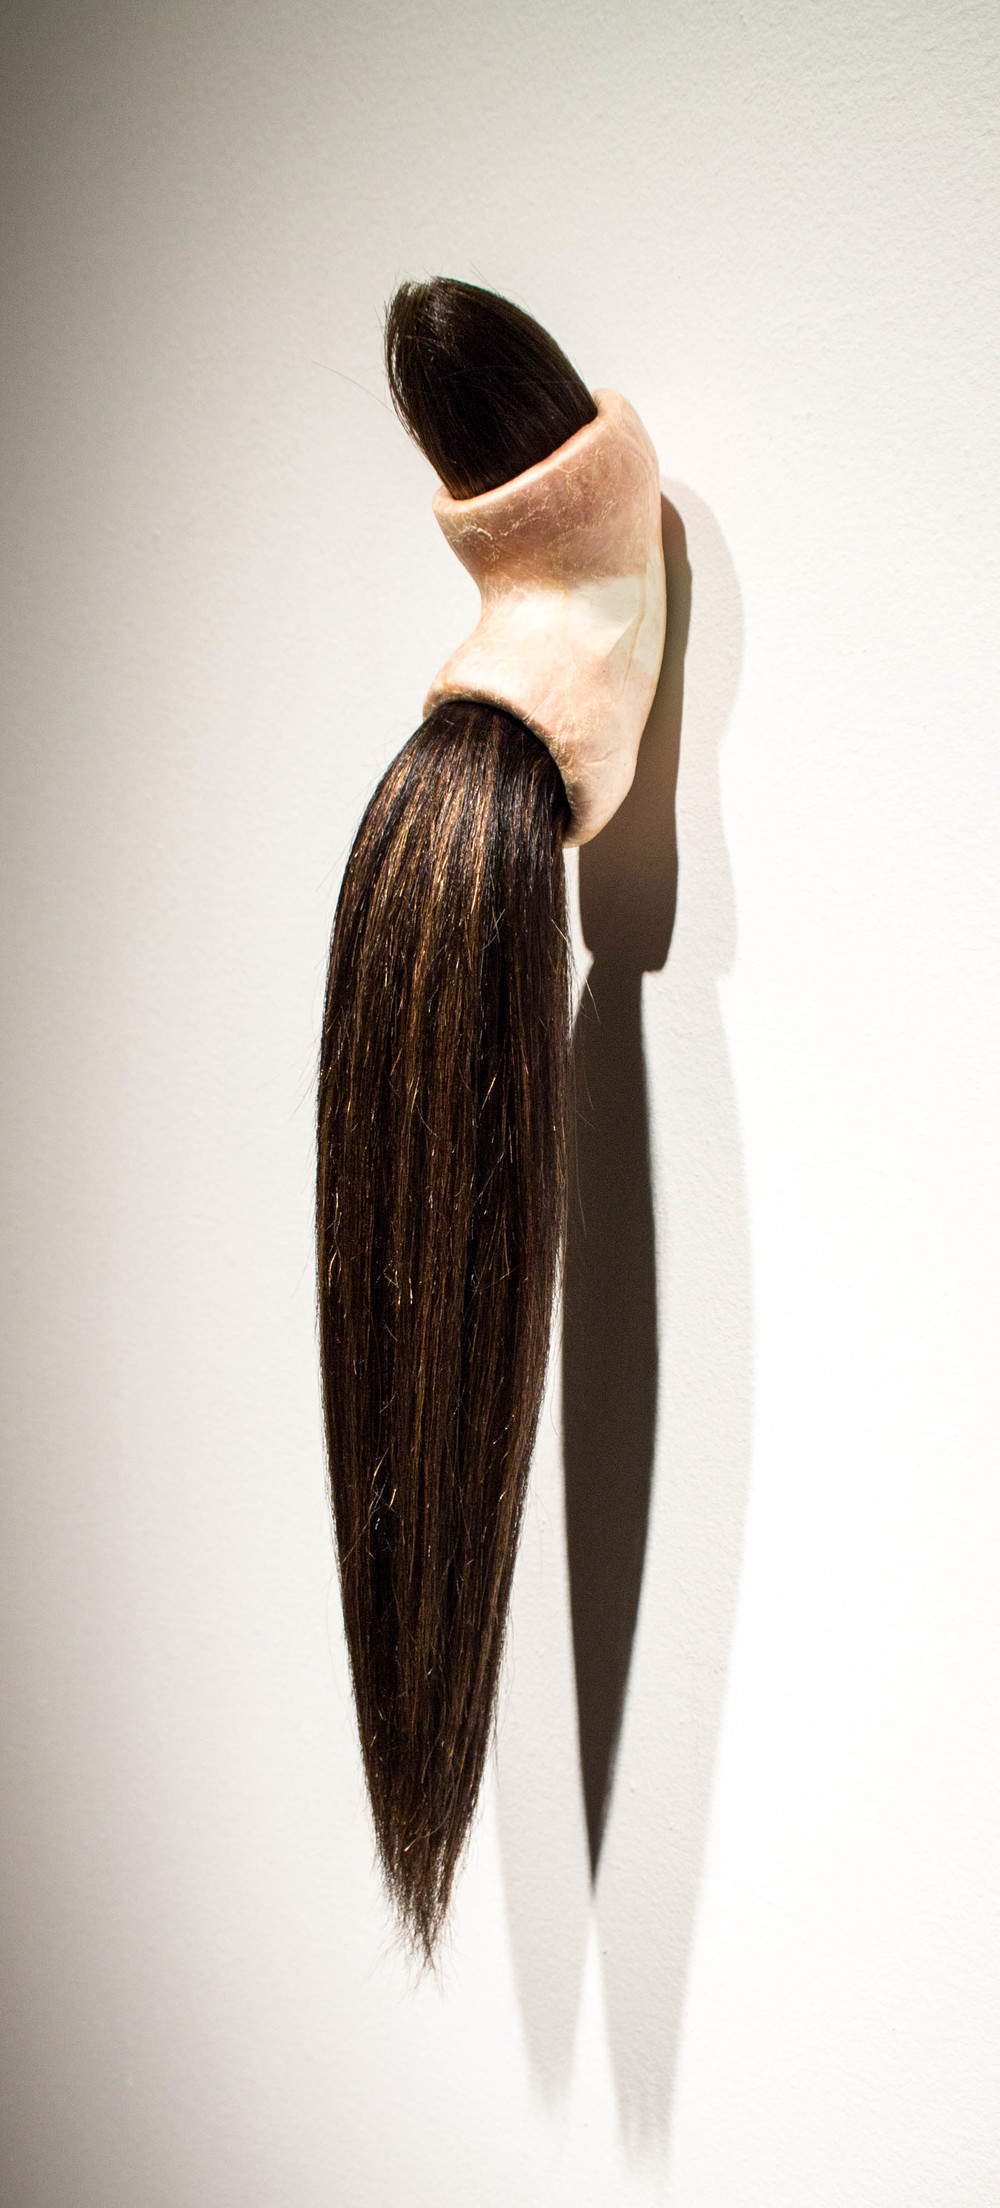 Follicle   - 2014 - human hair extensions, synthetic wig hair, hog intestines, fiberglass insulation, and pvc - 20 x 4 x 4 in.